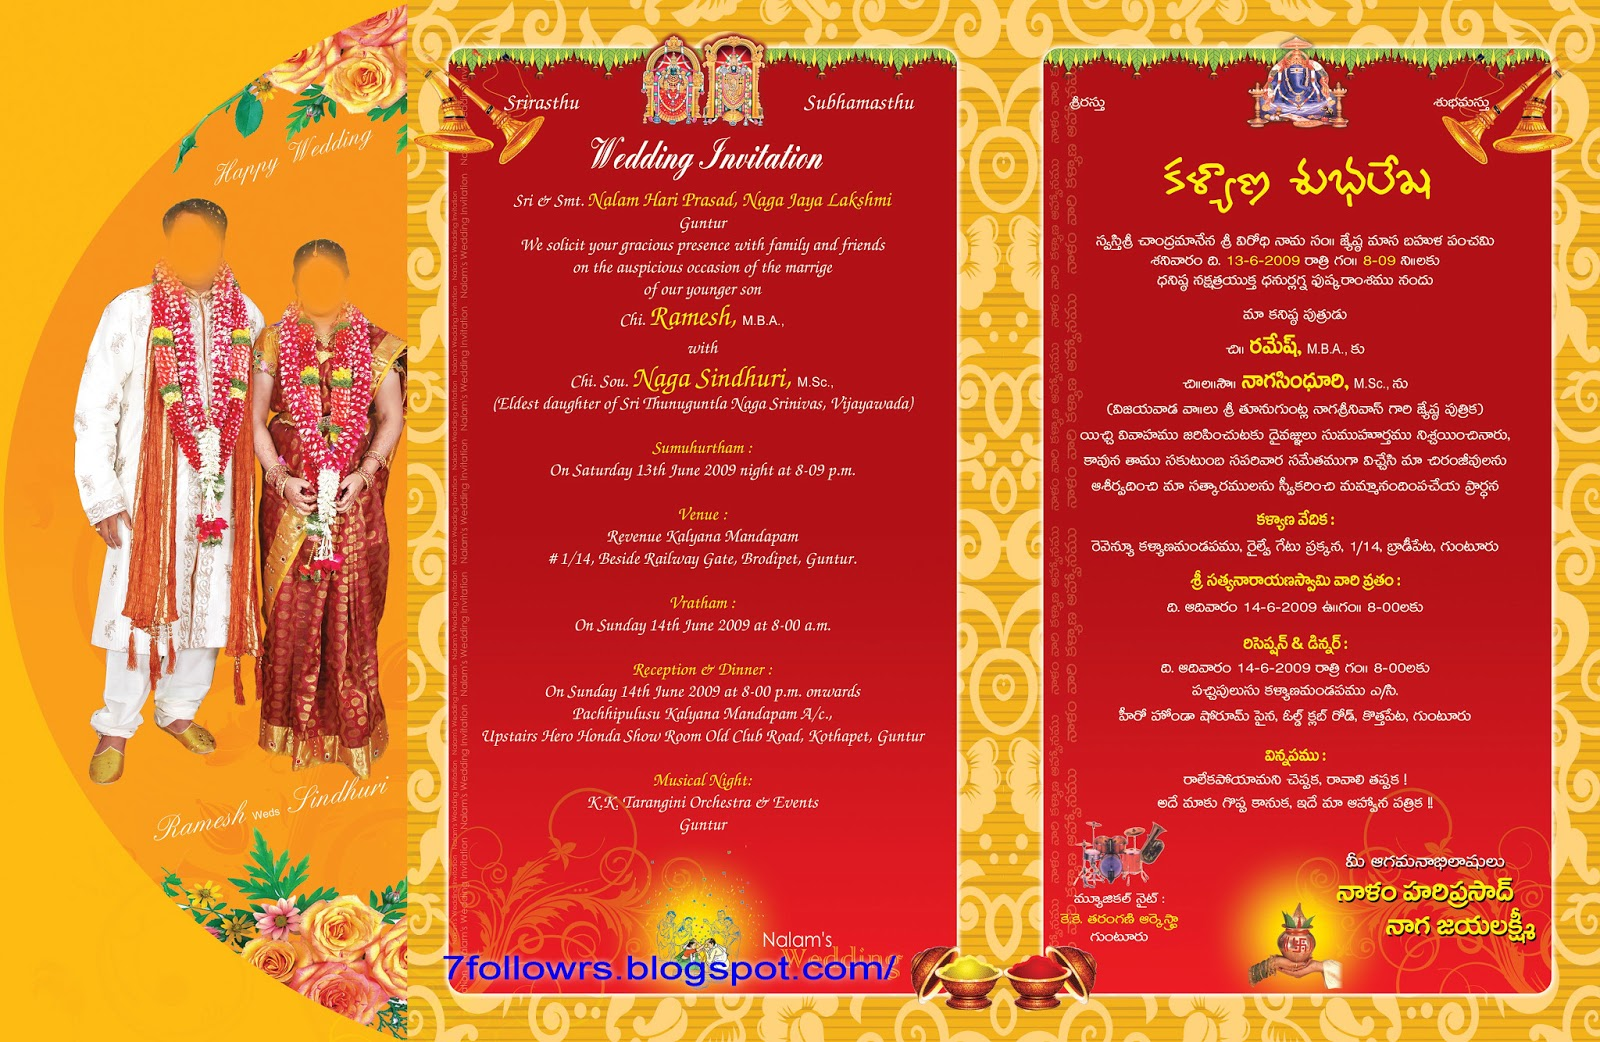 Telugu Wedding Invitation Cards Online Free | deweddingjpg.com